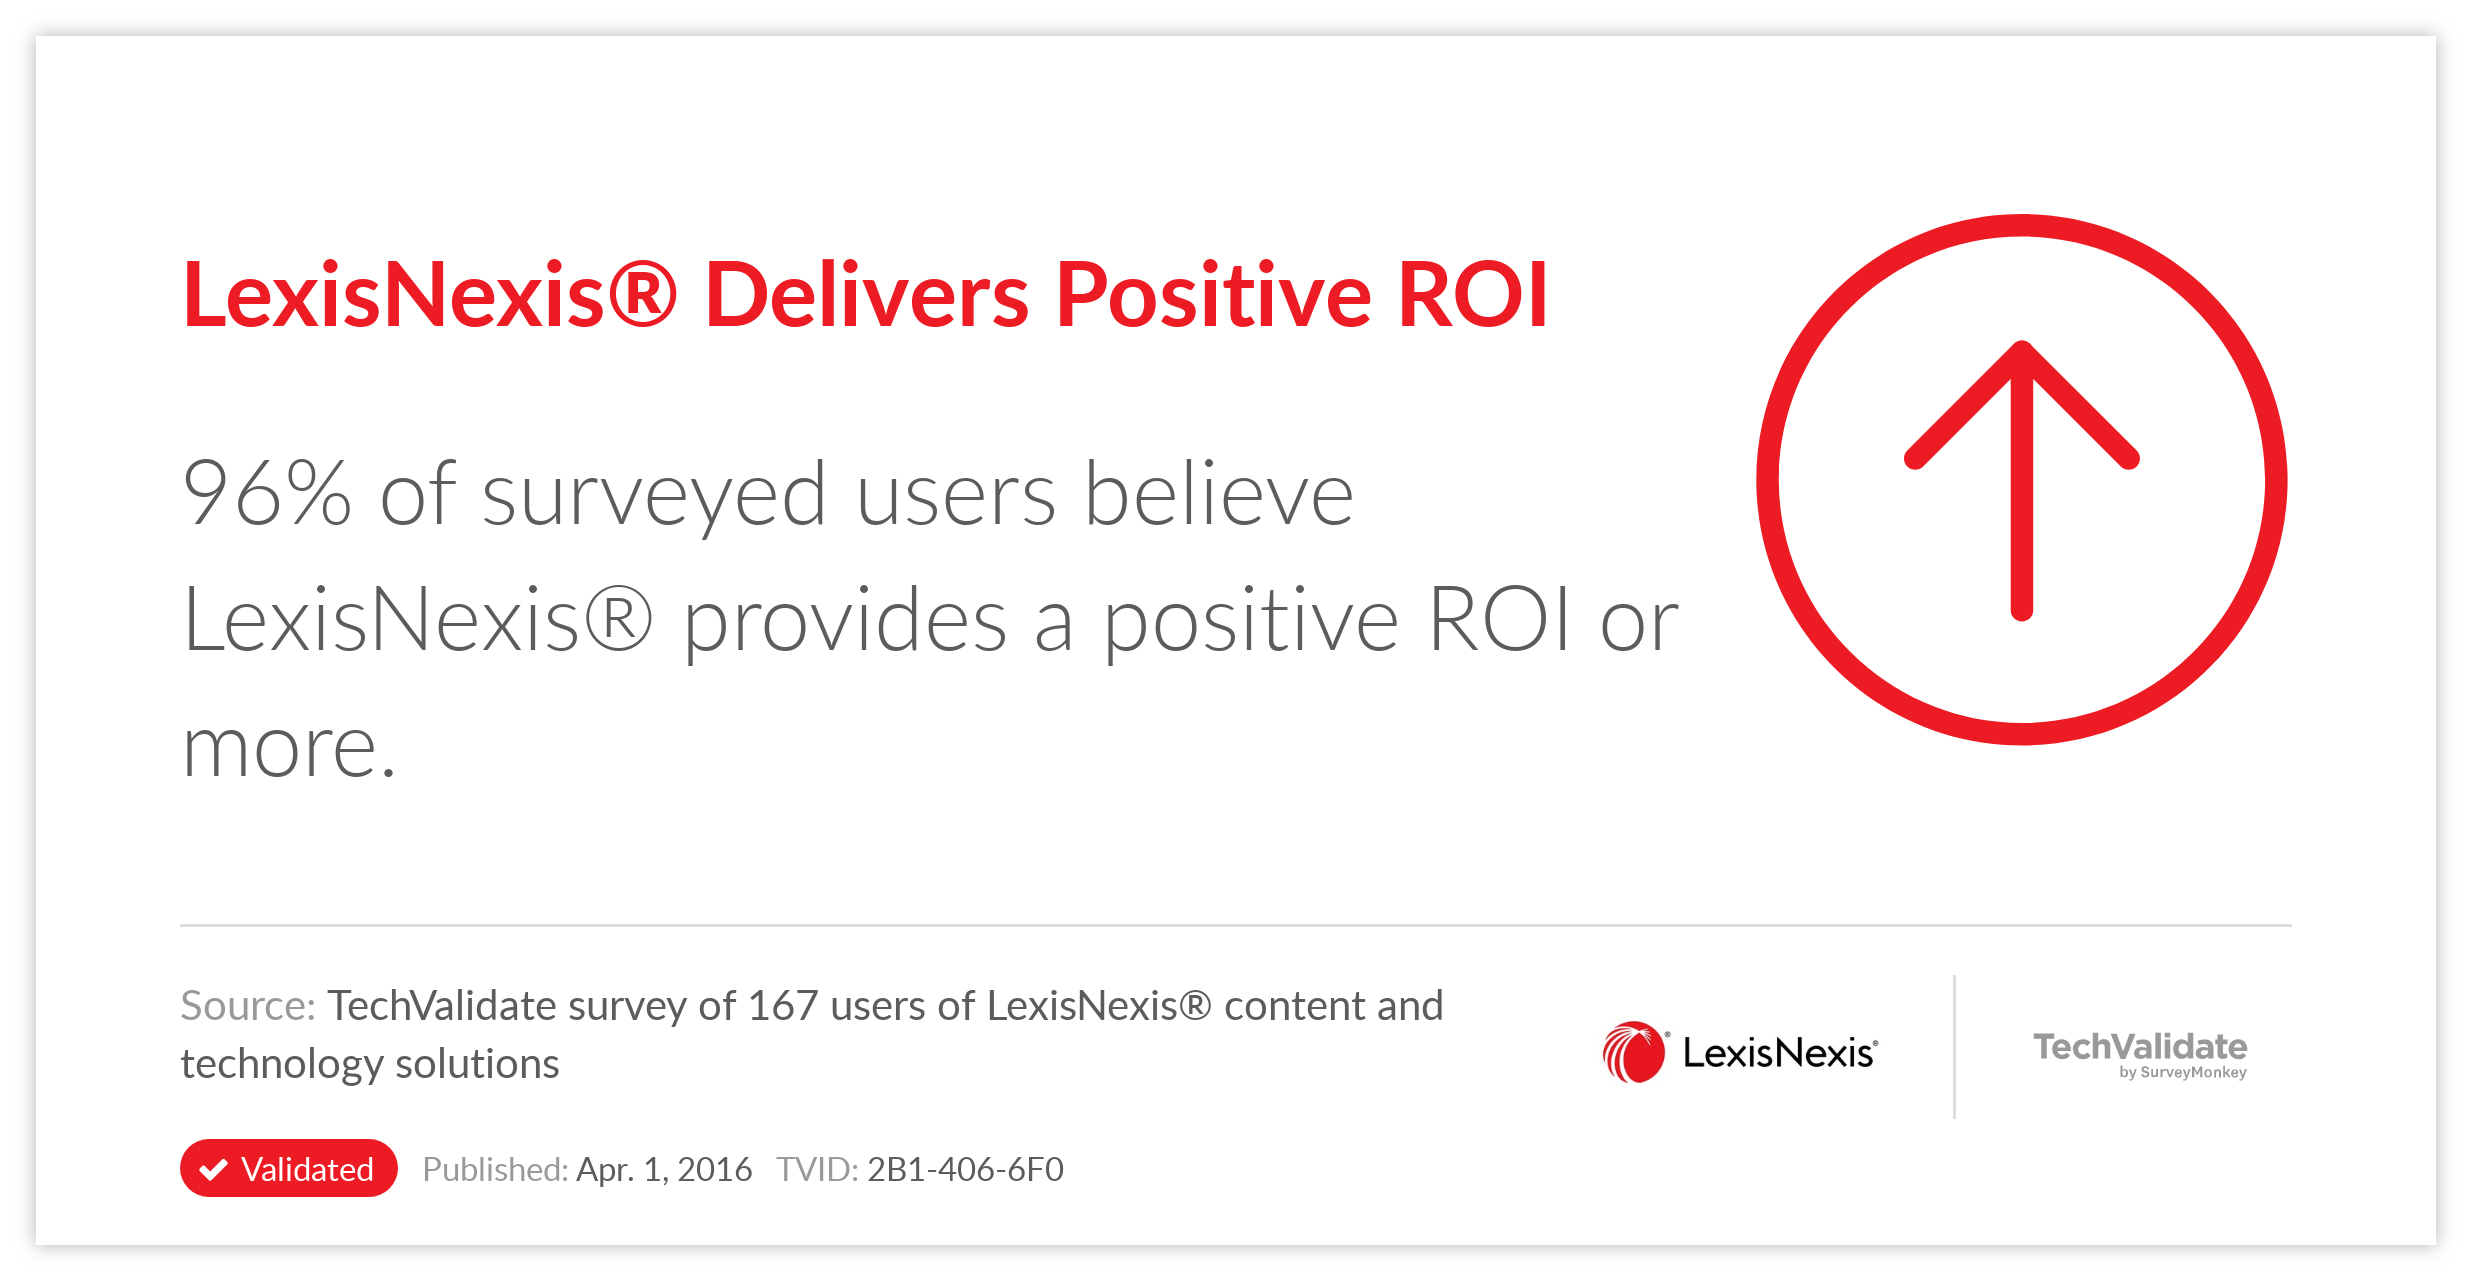 LexisNexis® Delivers Positive ROI